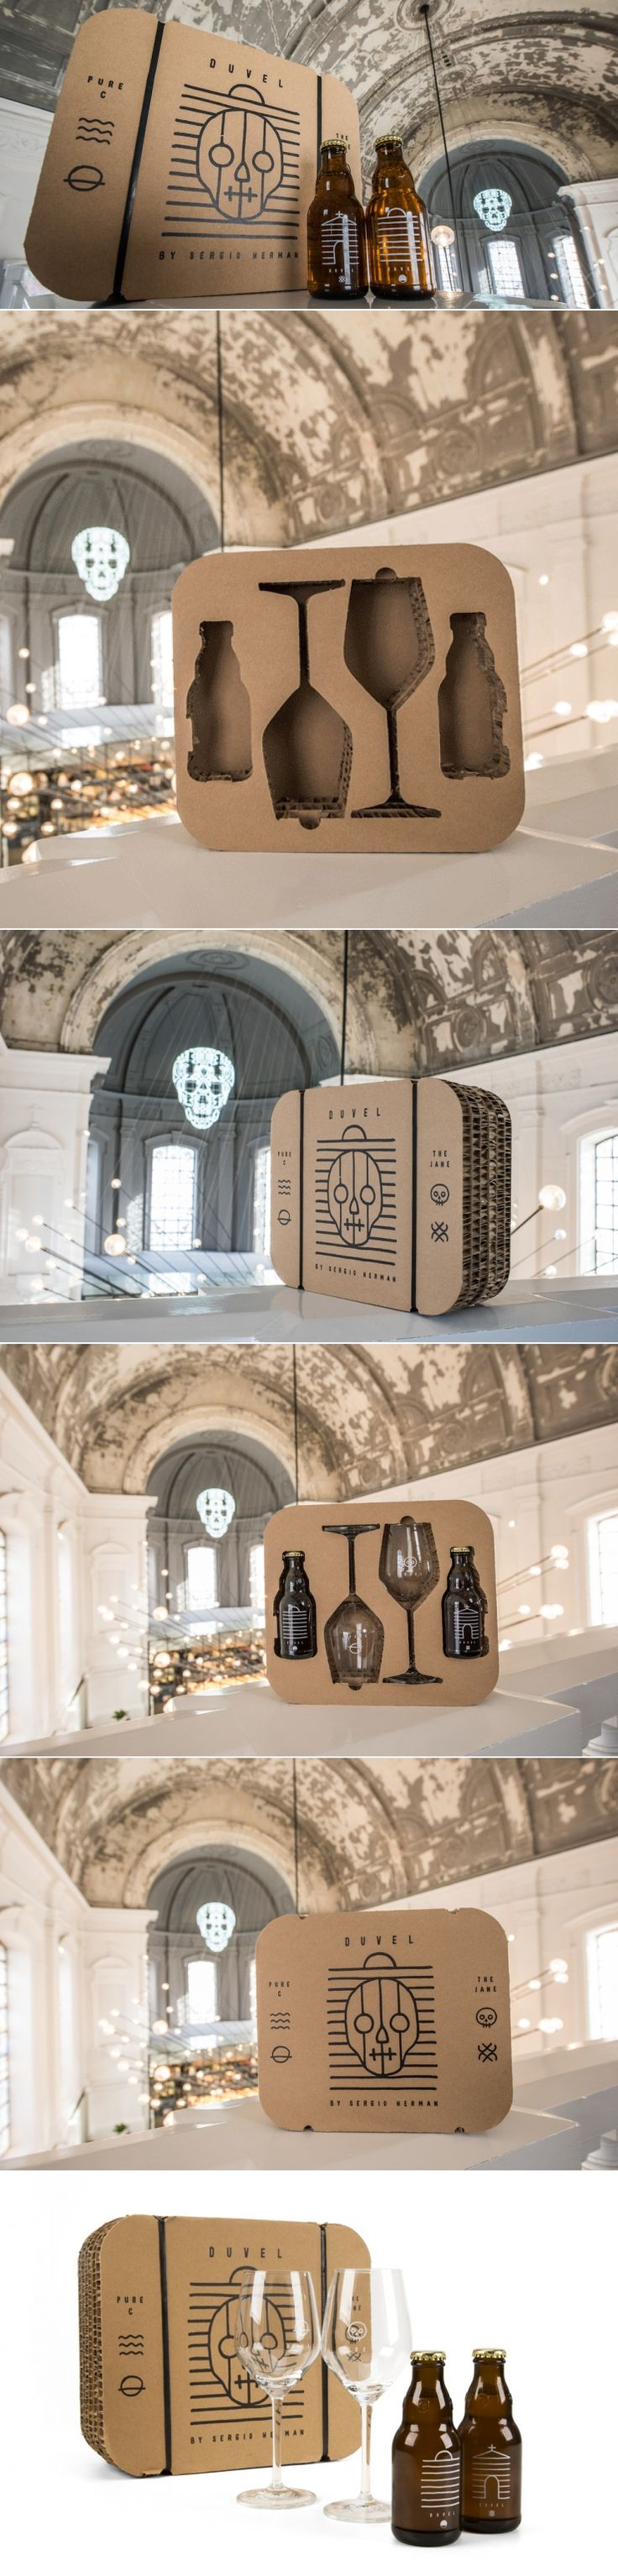 The Jane - Pure C Gift Pack with Duvel — The Dieline | Packaging & Branding Design & Innovation News